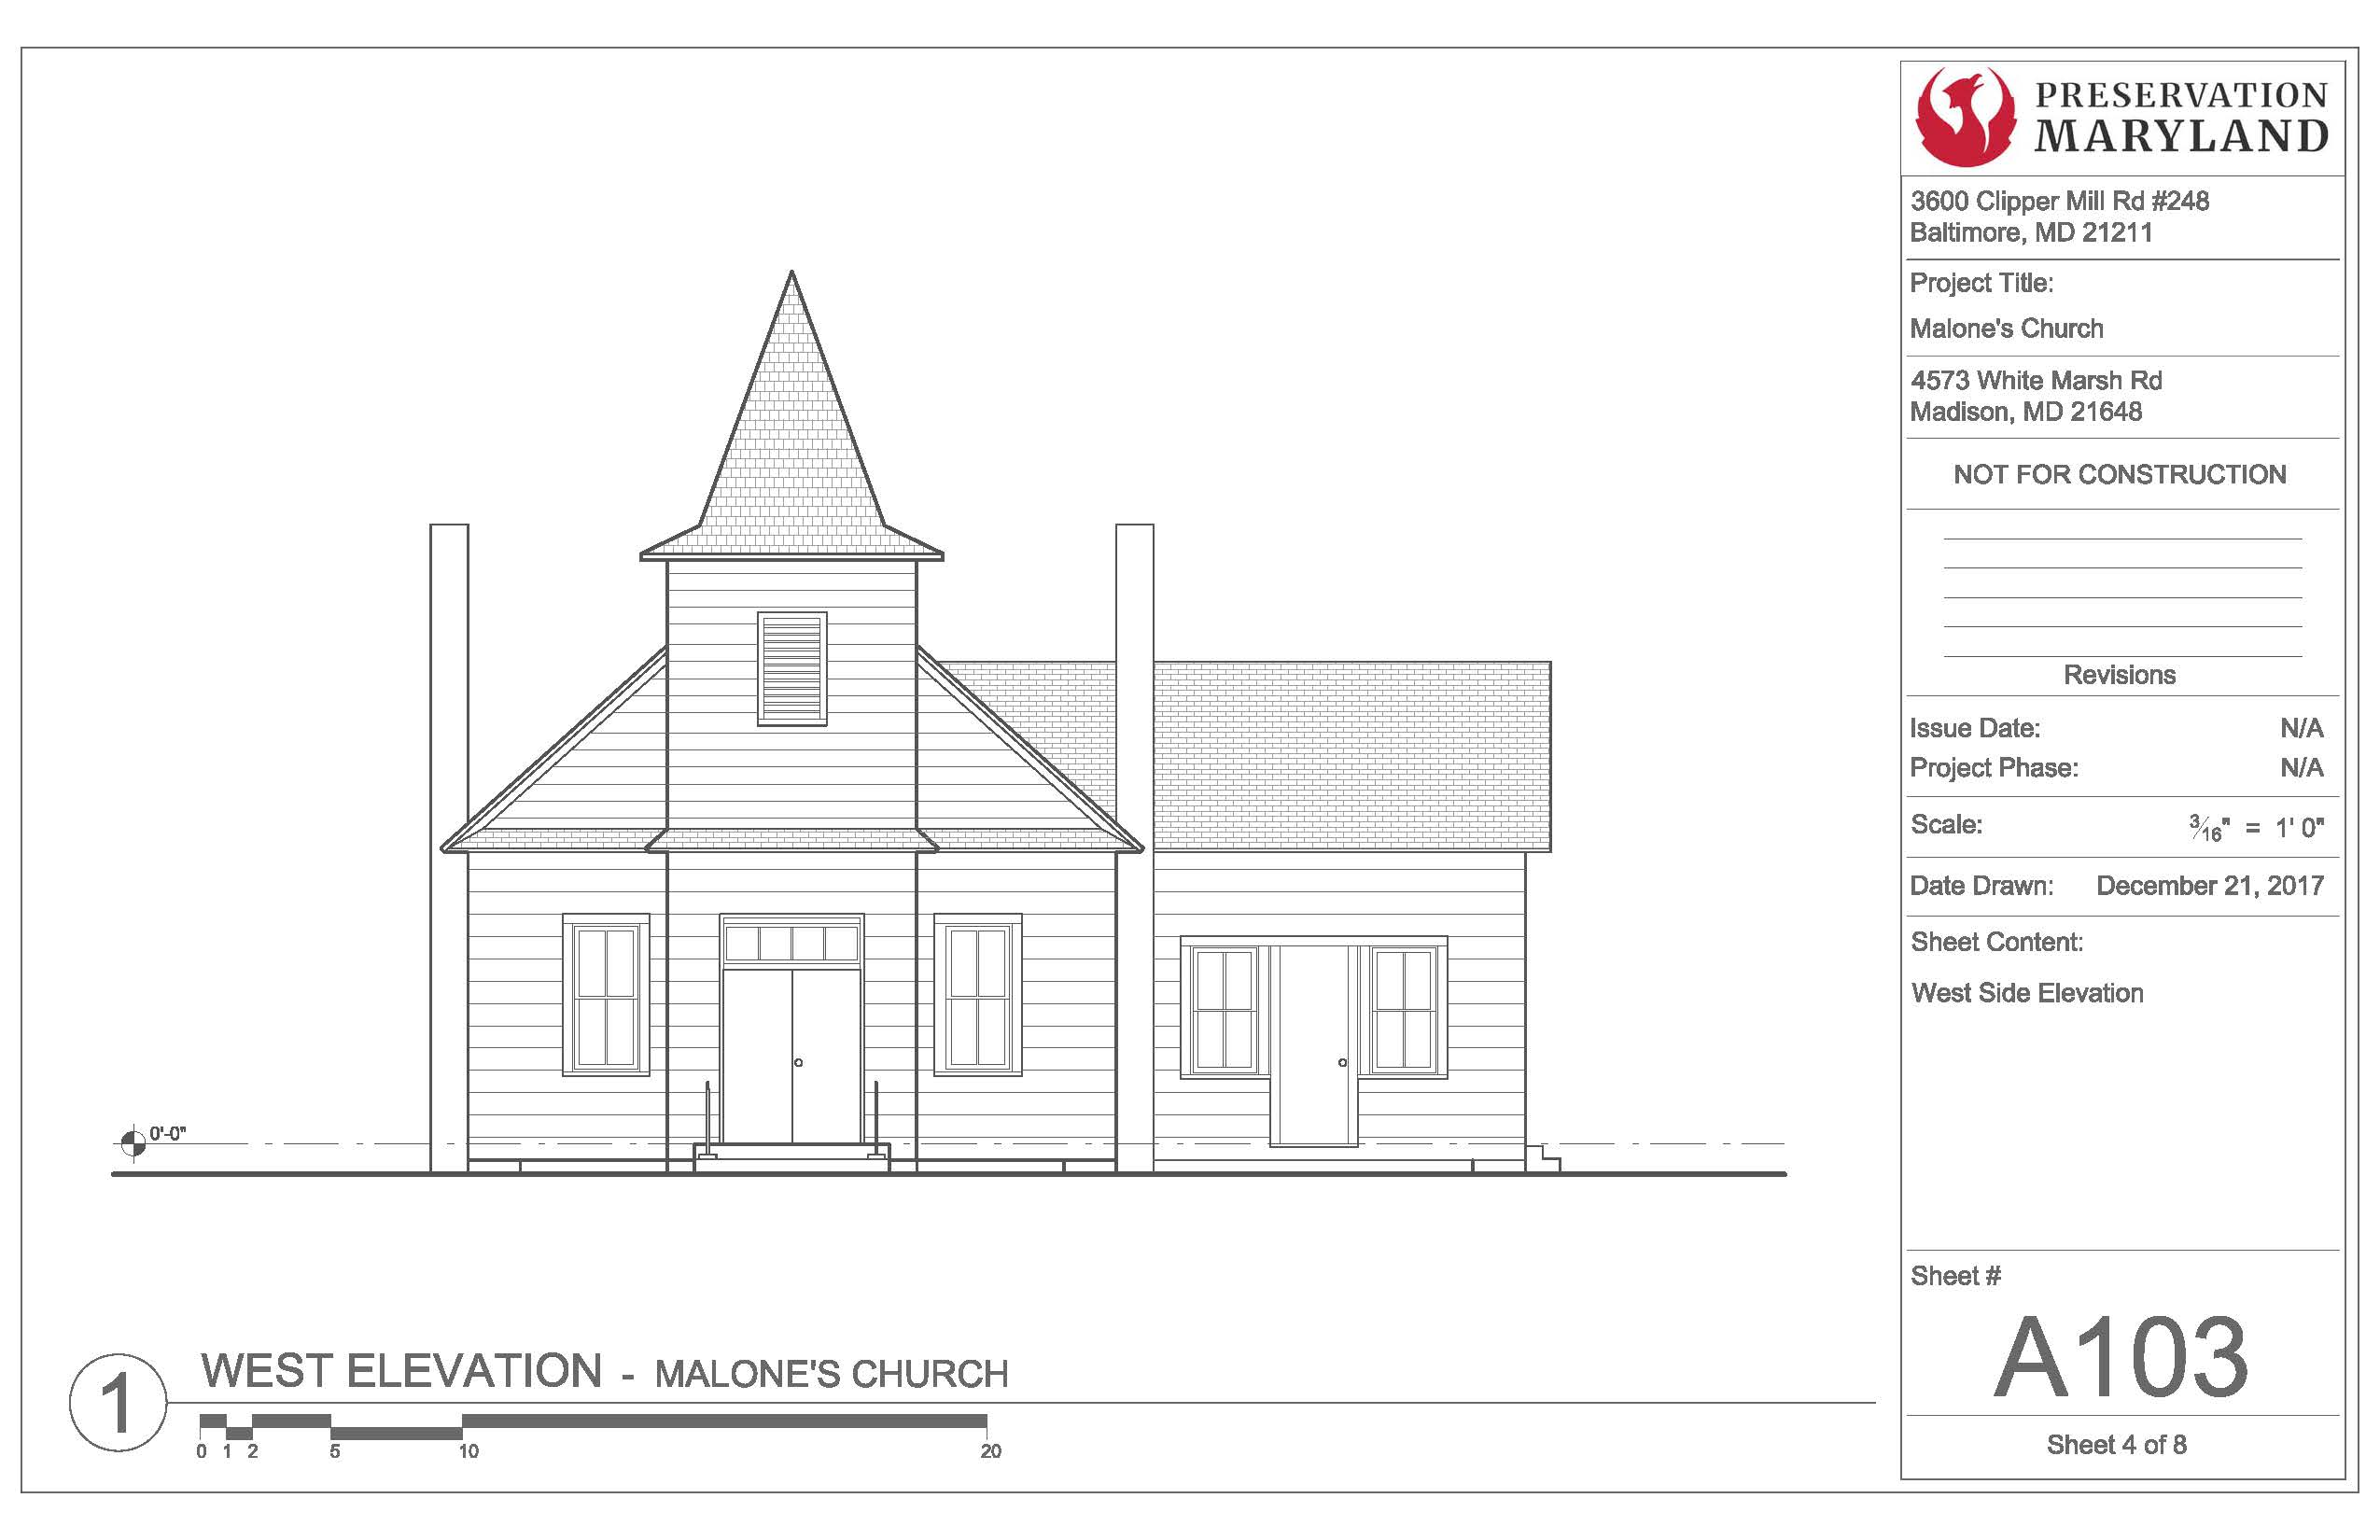 Architectural Drawing of Malone's Church West Elevation